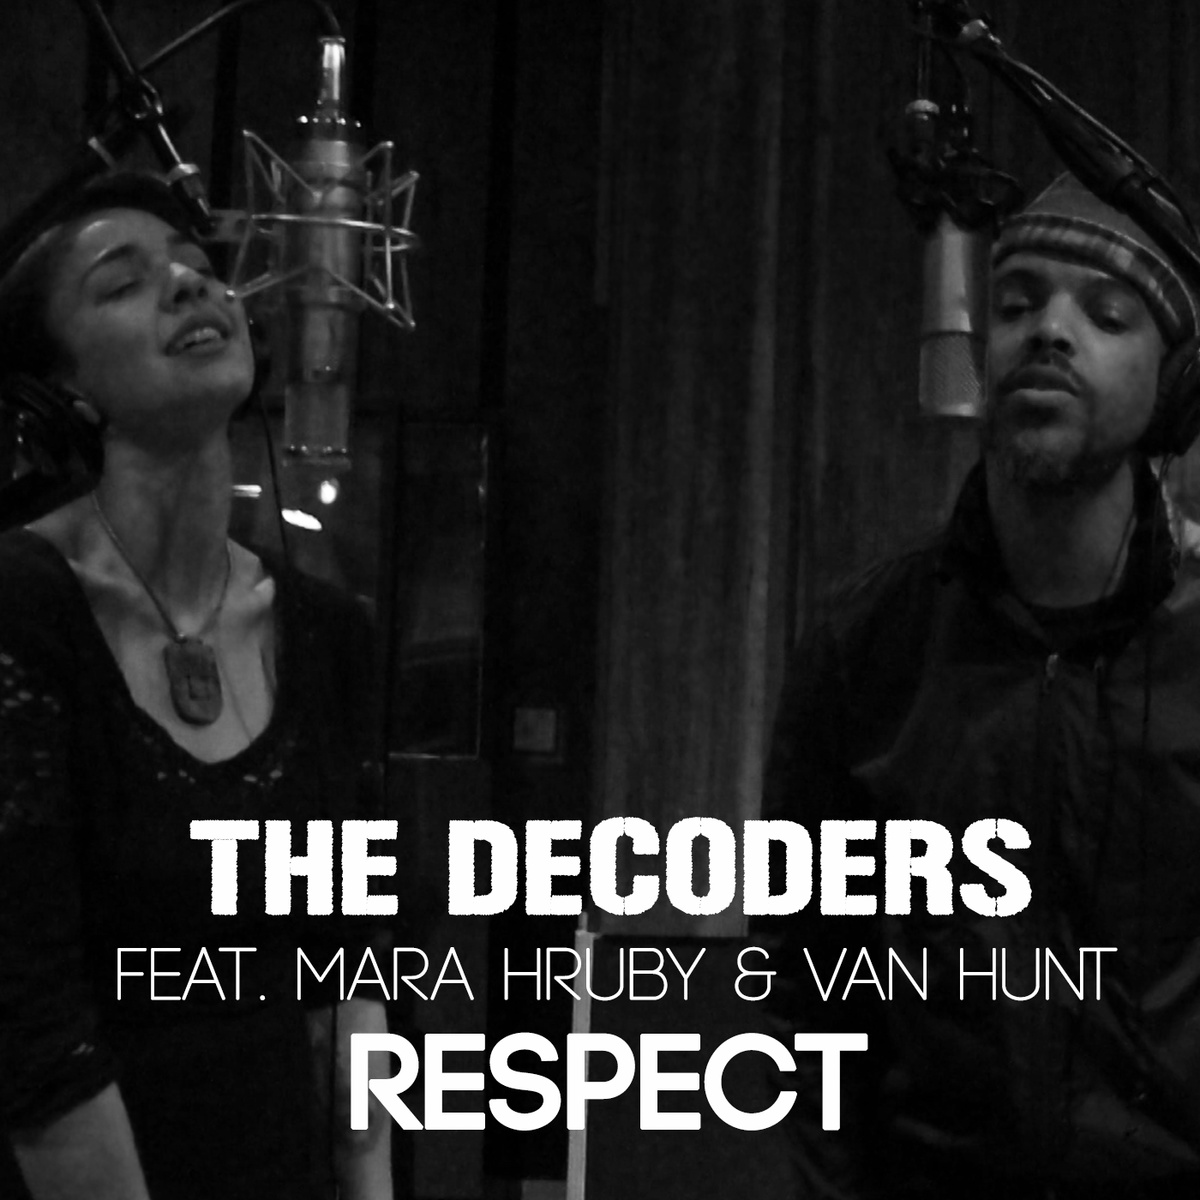 """The Decoders are at it again with another Rotary Connection cover of a cover, the classic known as ""Respect"" made famous by the likes of Otis Redding and Aretha Franklin. Enlisting the talents of Oakland based chanteuse Mara Hruby and the illustrious Van Hunt, The Decoders give an intimate look into their process in the studio creating the songs for their upcoming full length album release, ""Adventures From Paradise: A Tribute To Minnie Riperton"" coming out later this year. You can stream the track on the sound cloud page here: https://soundcloud.com/the-decoders/r.... You can also download the track along with their extensive catalog here: https://thedecoders.bandcamp.com"" -thedecoders.bandcamp.com"